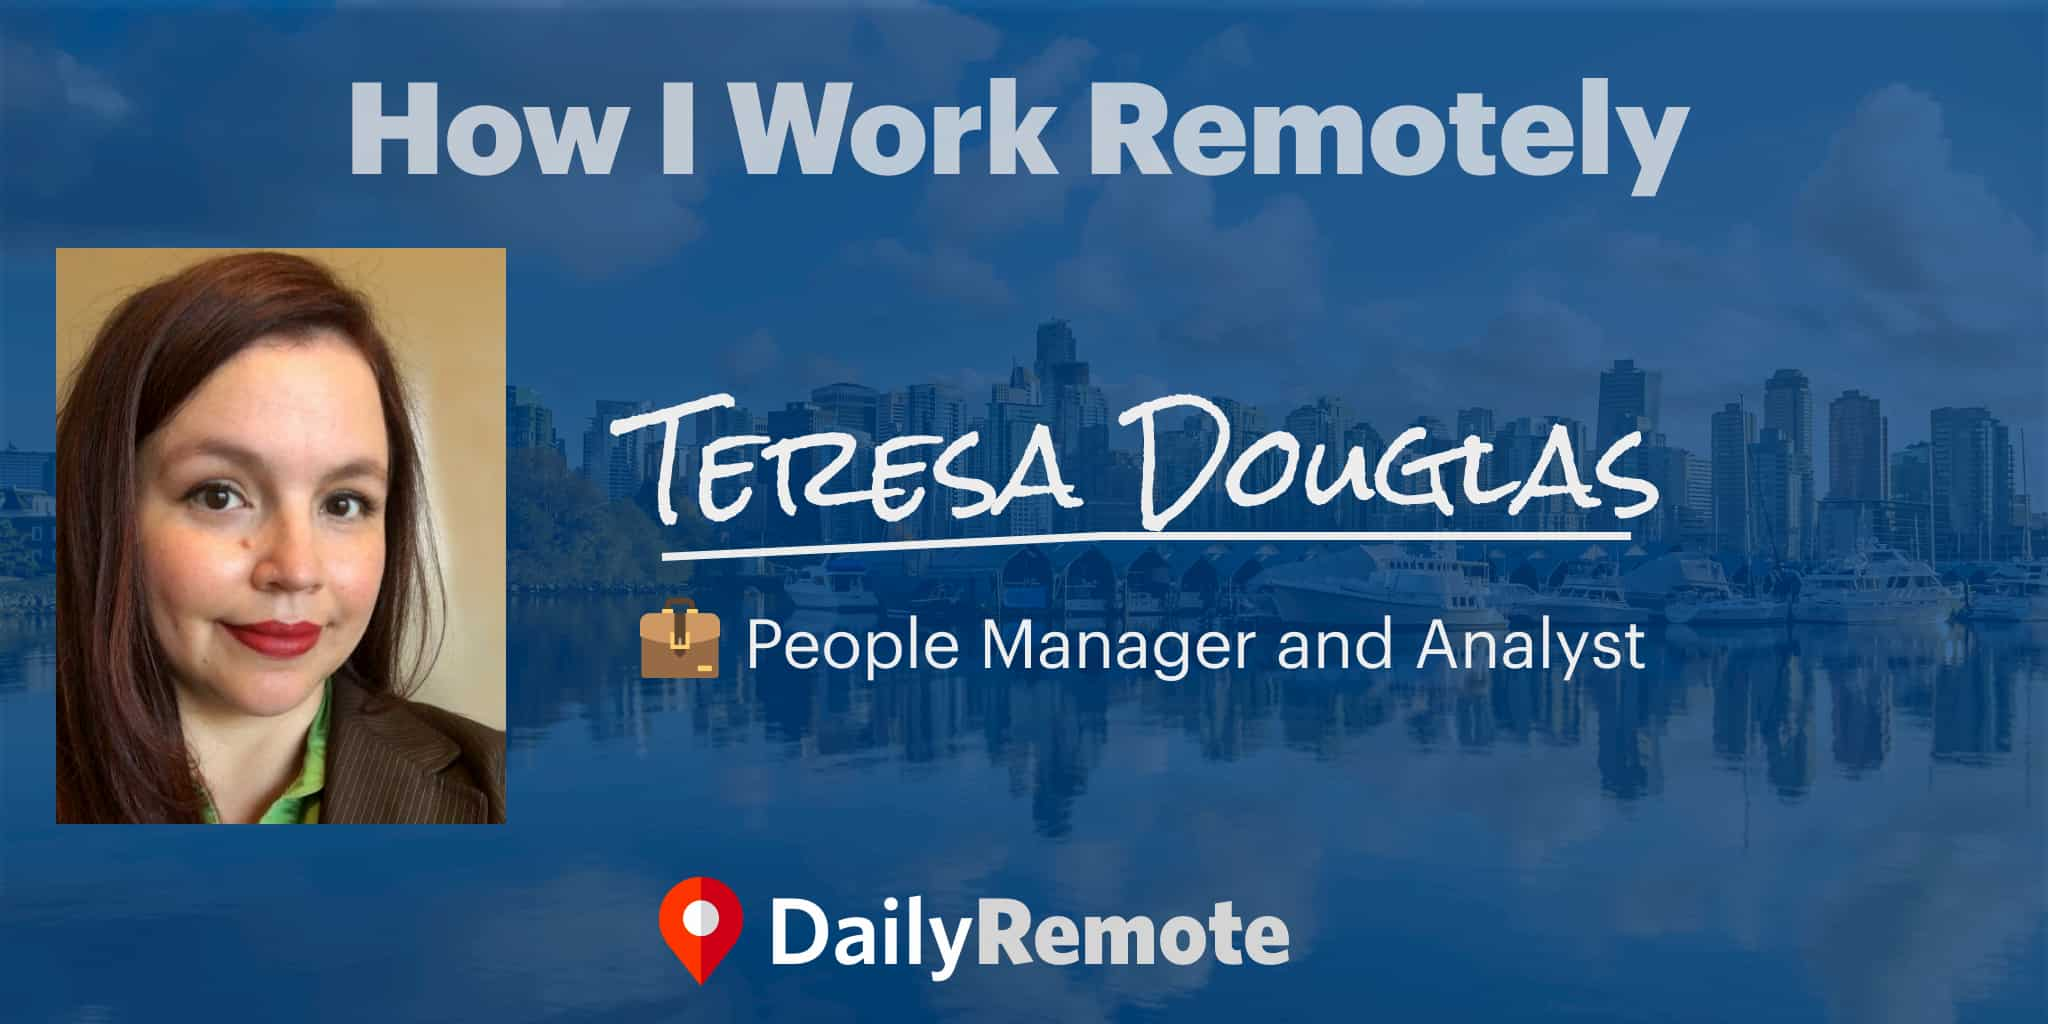 How I Work Remotely: Teresa Douglas